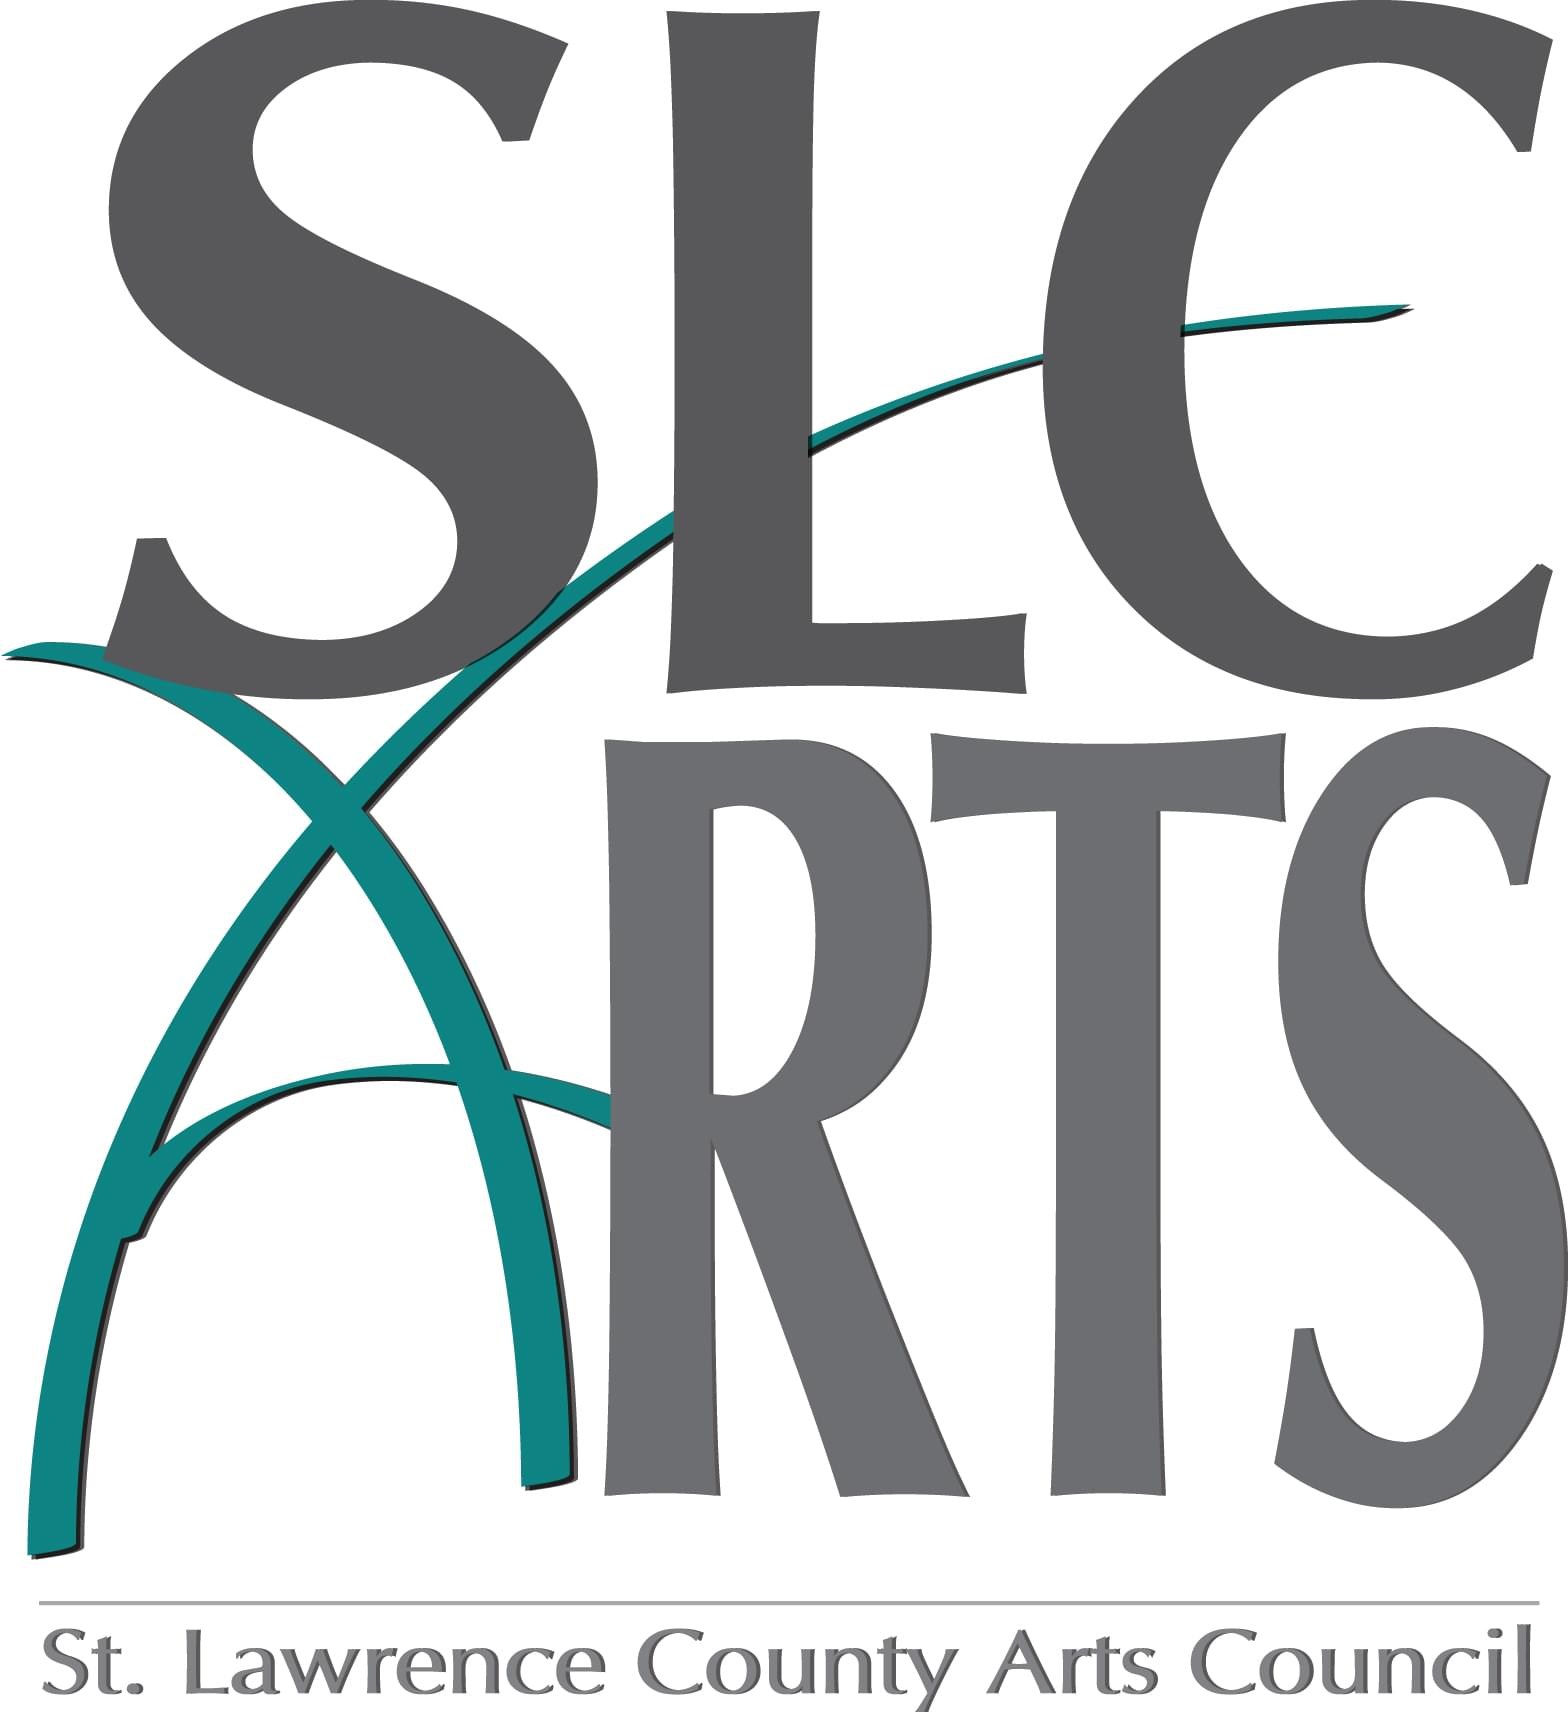 St. Lawrence County Arts Council Offers a Figure